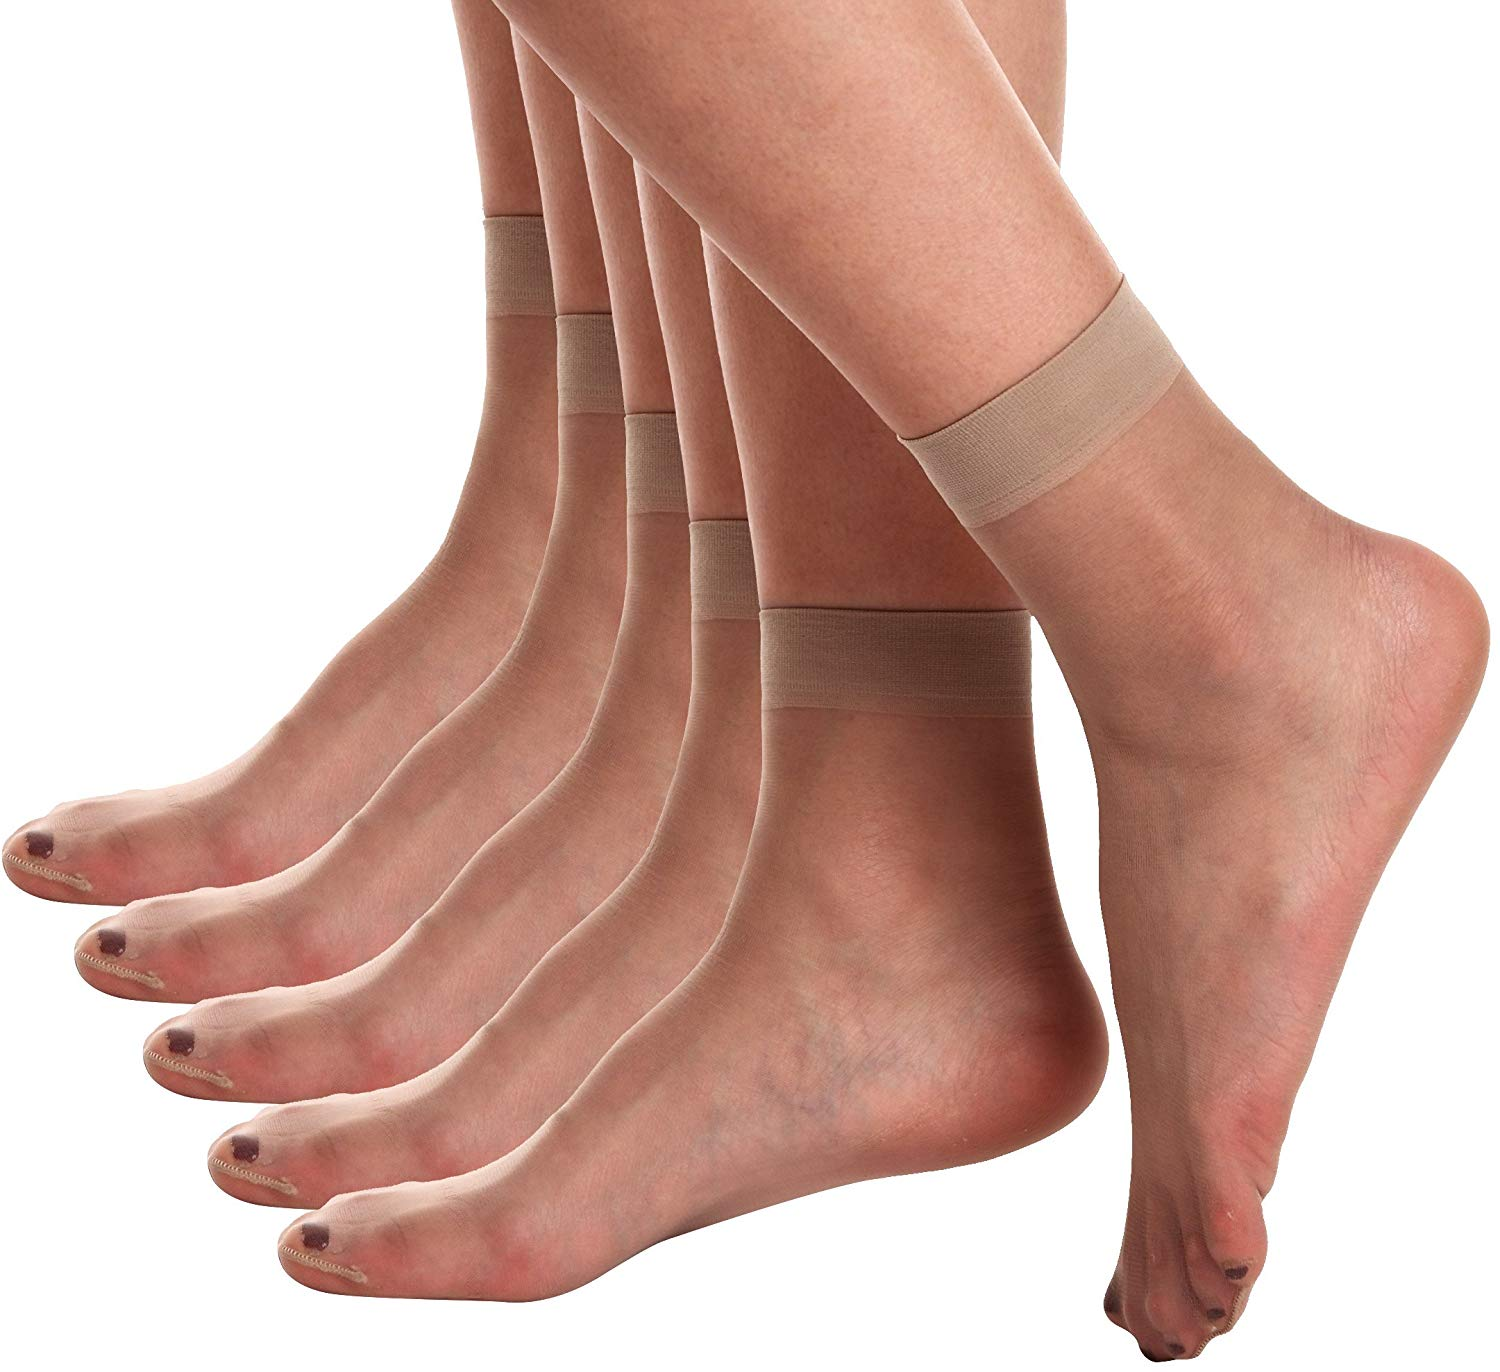 a9b707d3c Get Quotations · Florboom Sexy Ankle Pantyhose Squre Stripe Patterned Dress  Sock 5 Pack